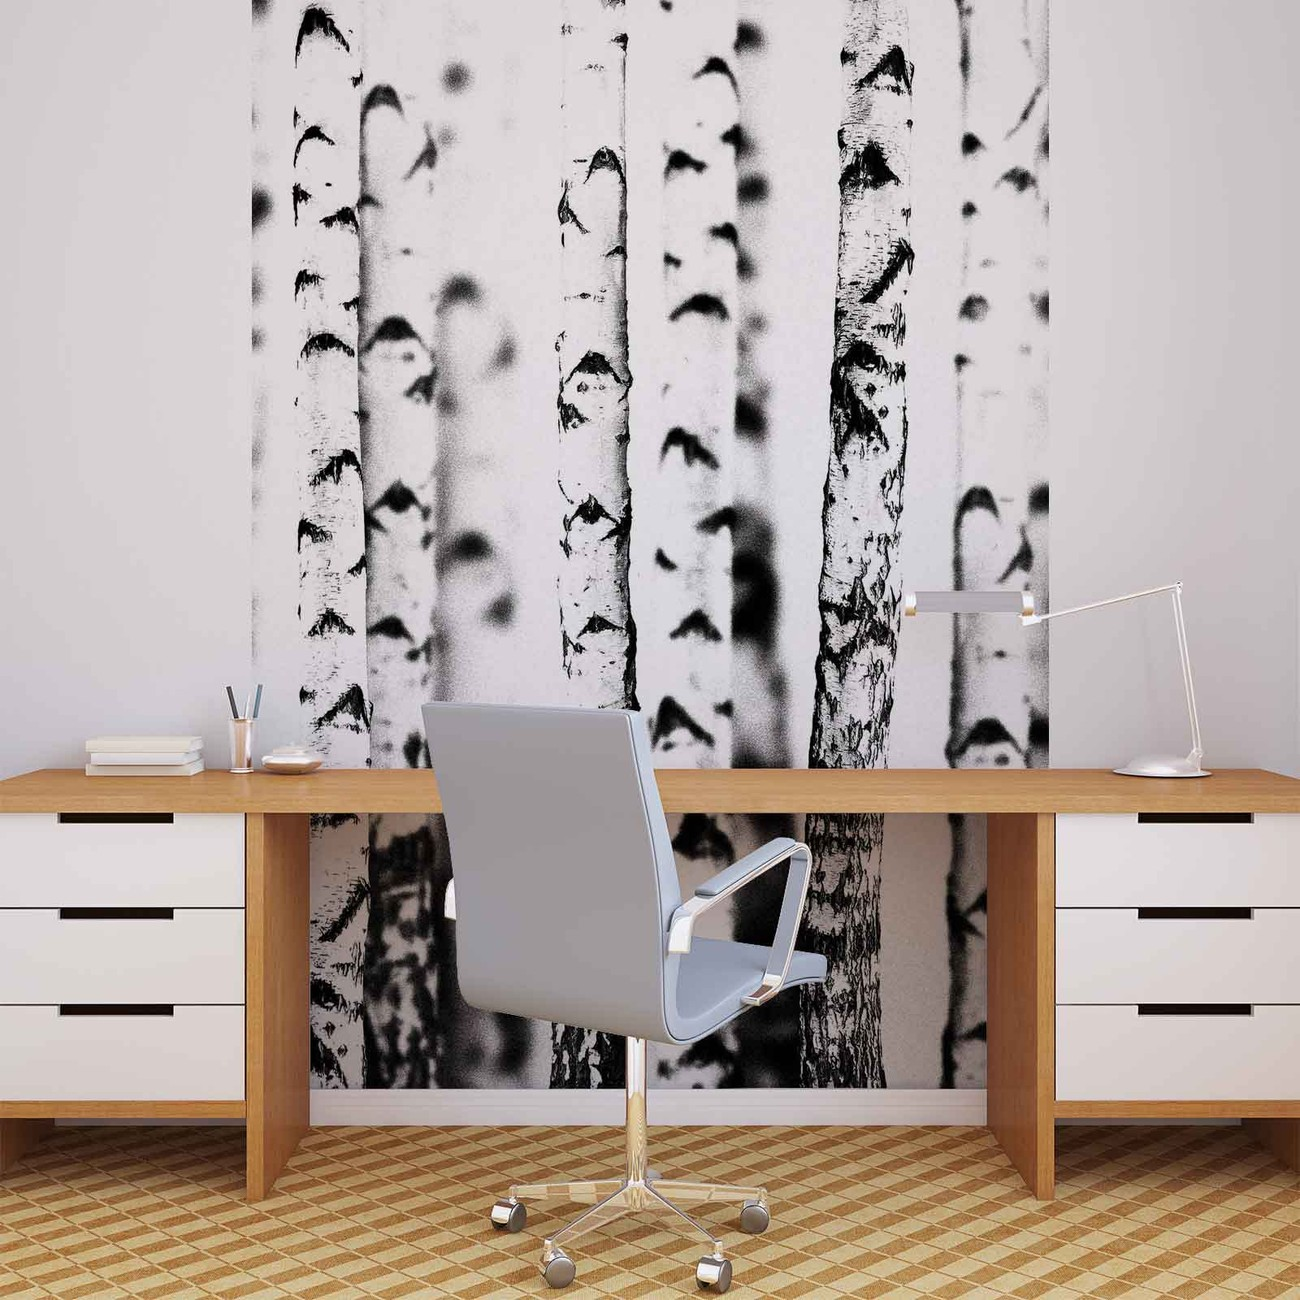 fototapete tapete schwarz wei b ume wald natur bei europosters kostenloser versand. Black Bedroom Furniture Sets. Home Design Ideas